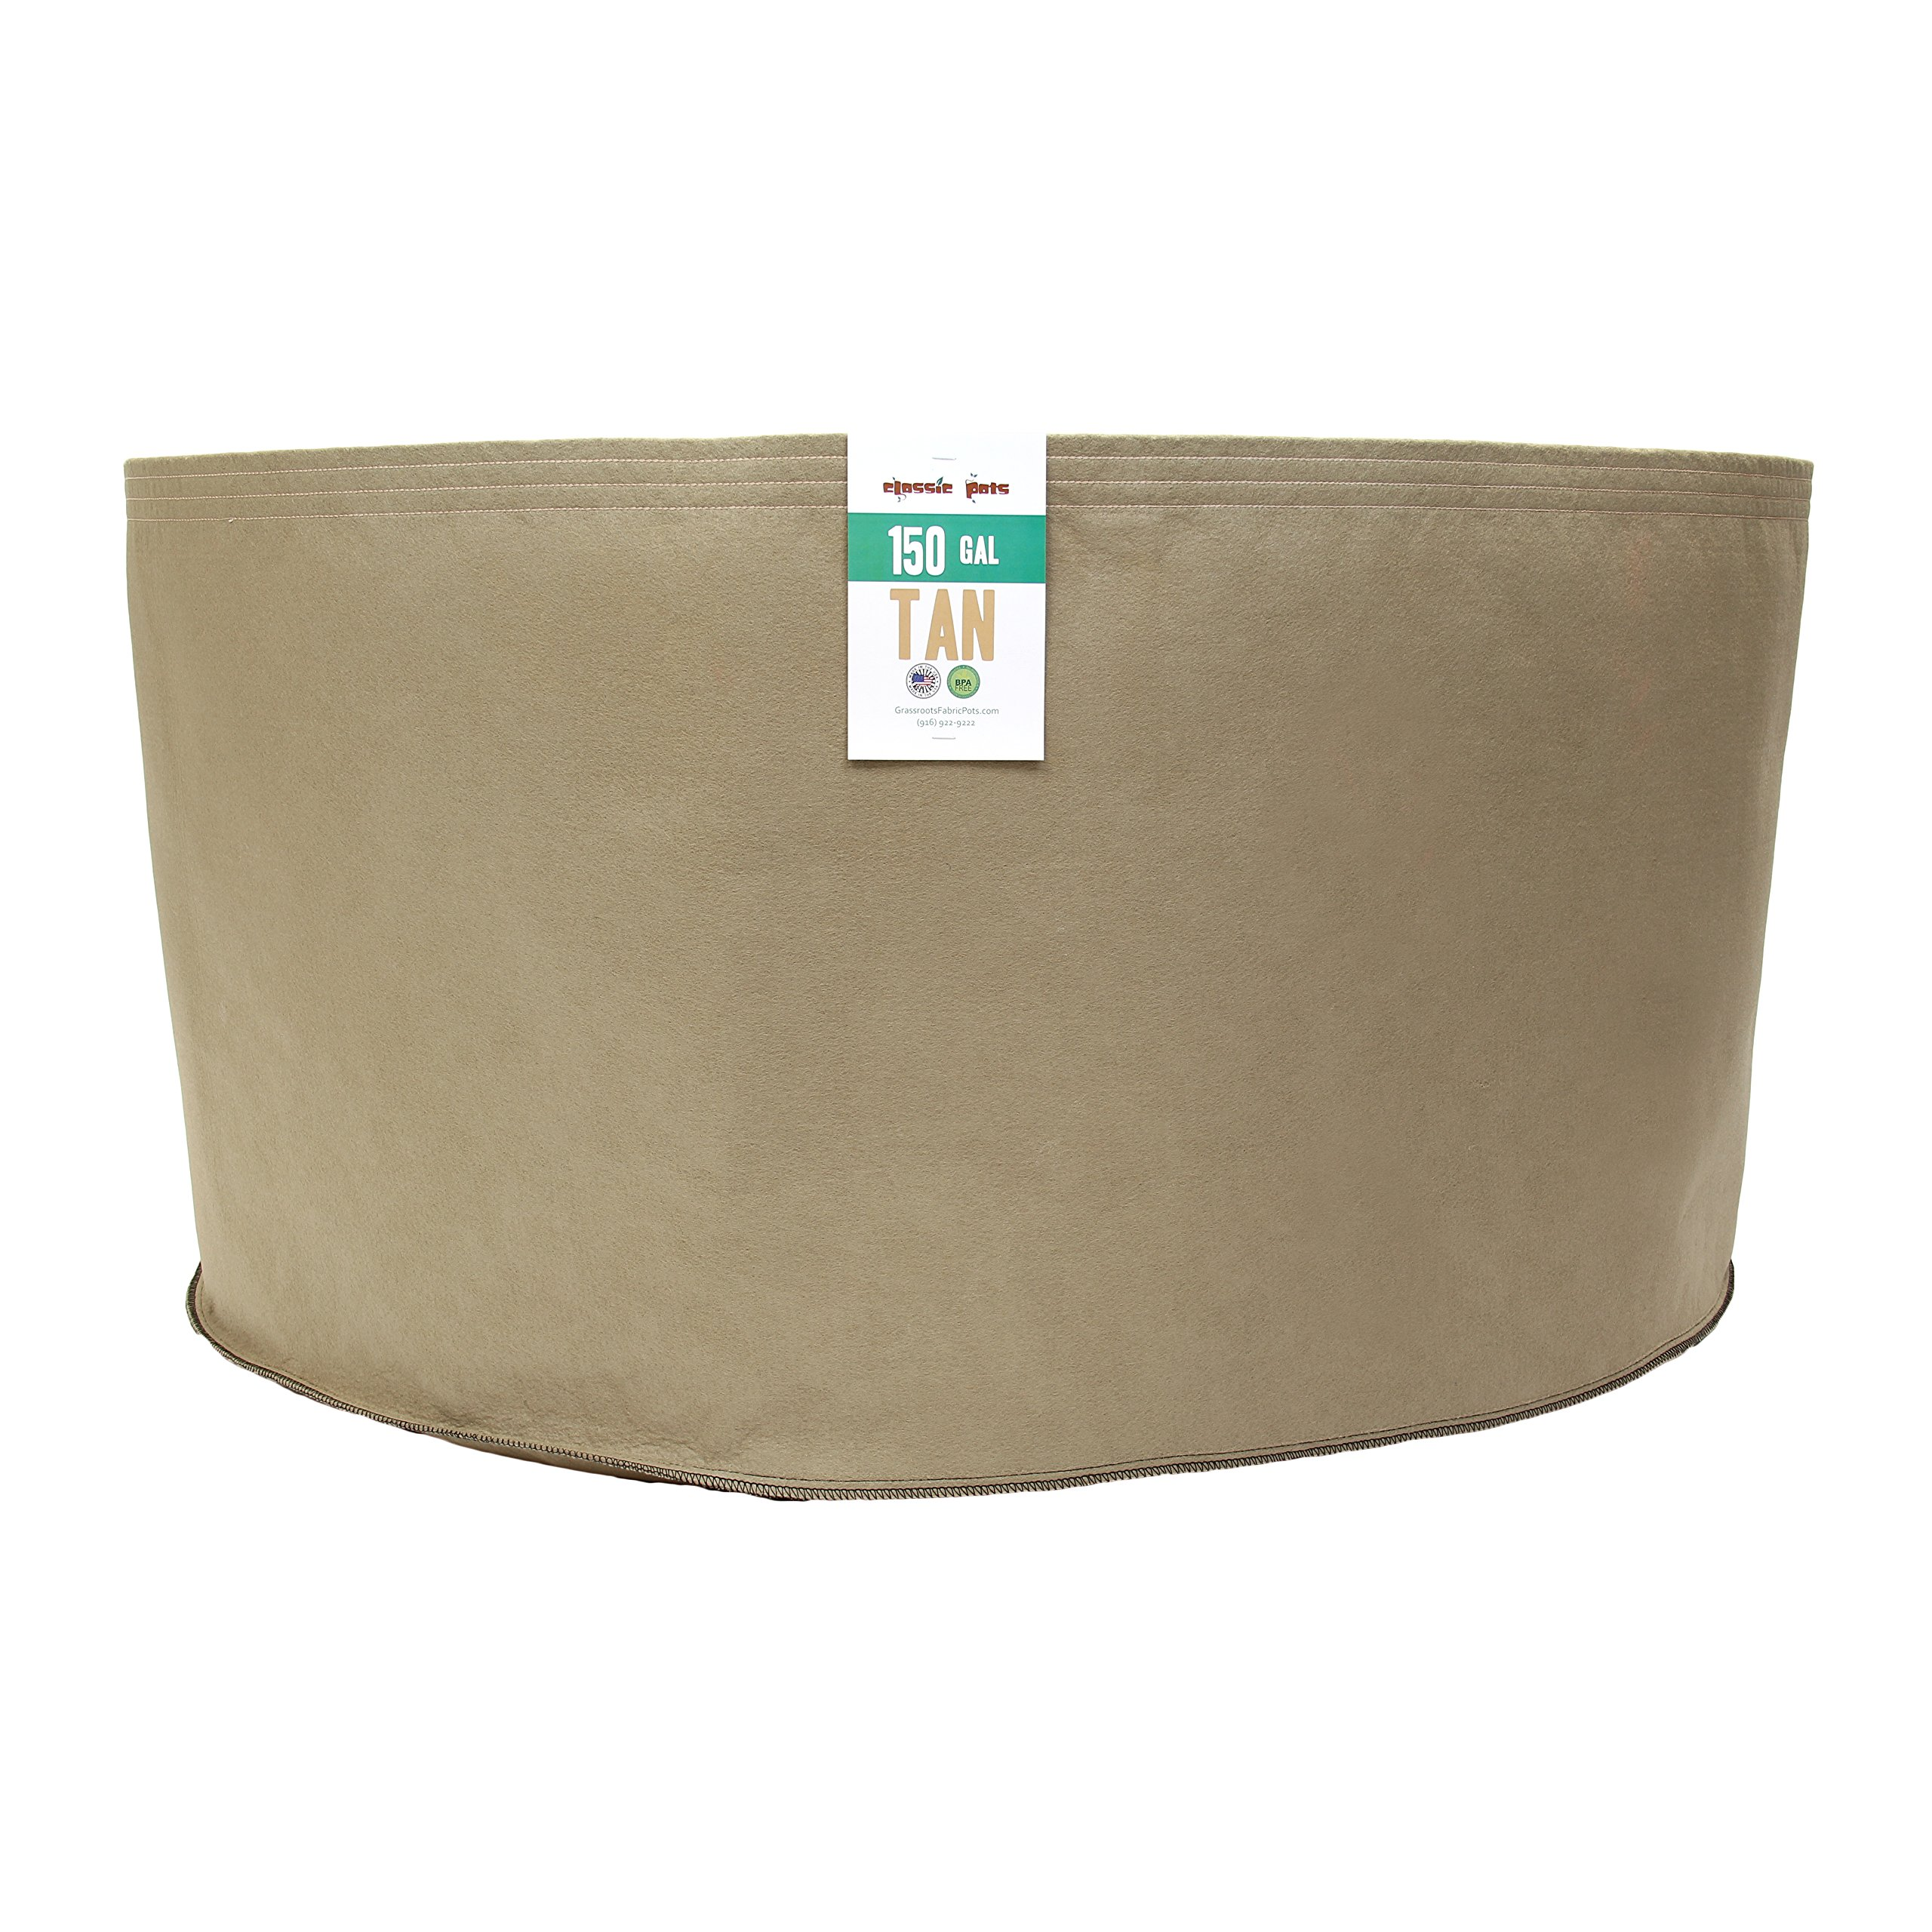 (50 Pack) 150 Gallon Tan Grassroots Fabric Pot - Grow Pot and Aeration Container